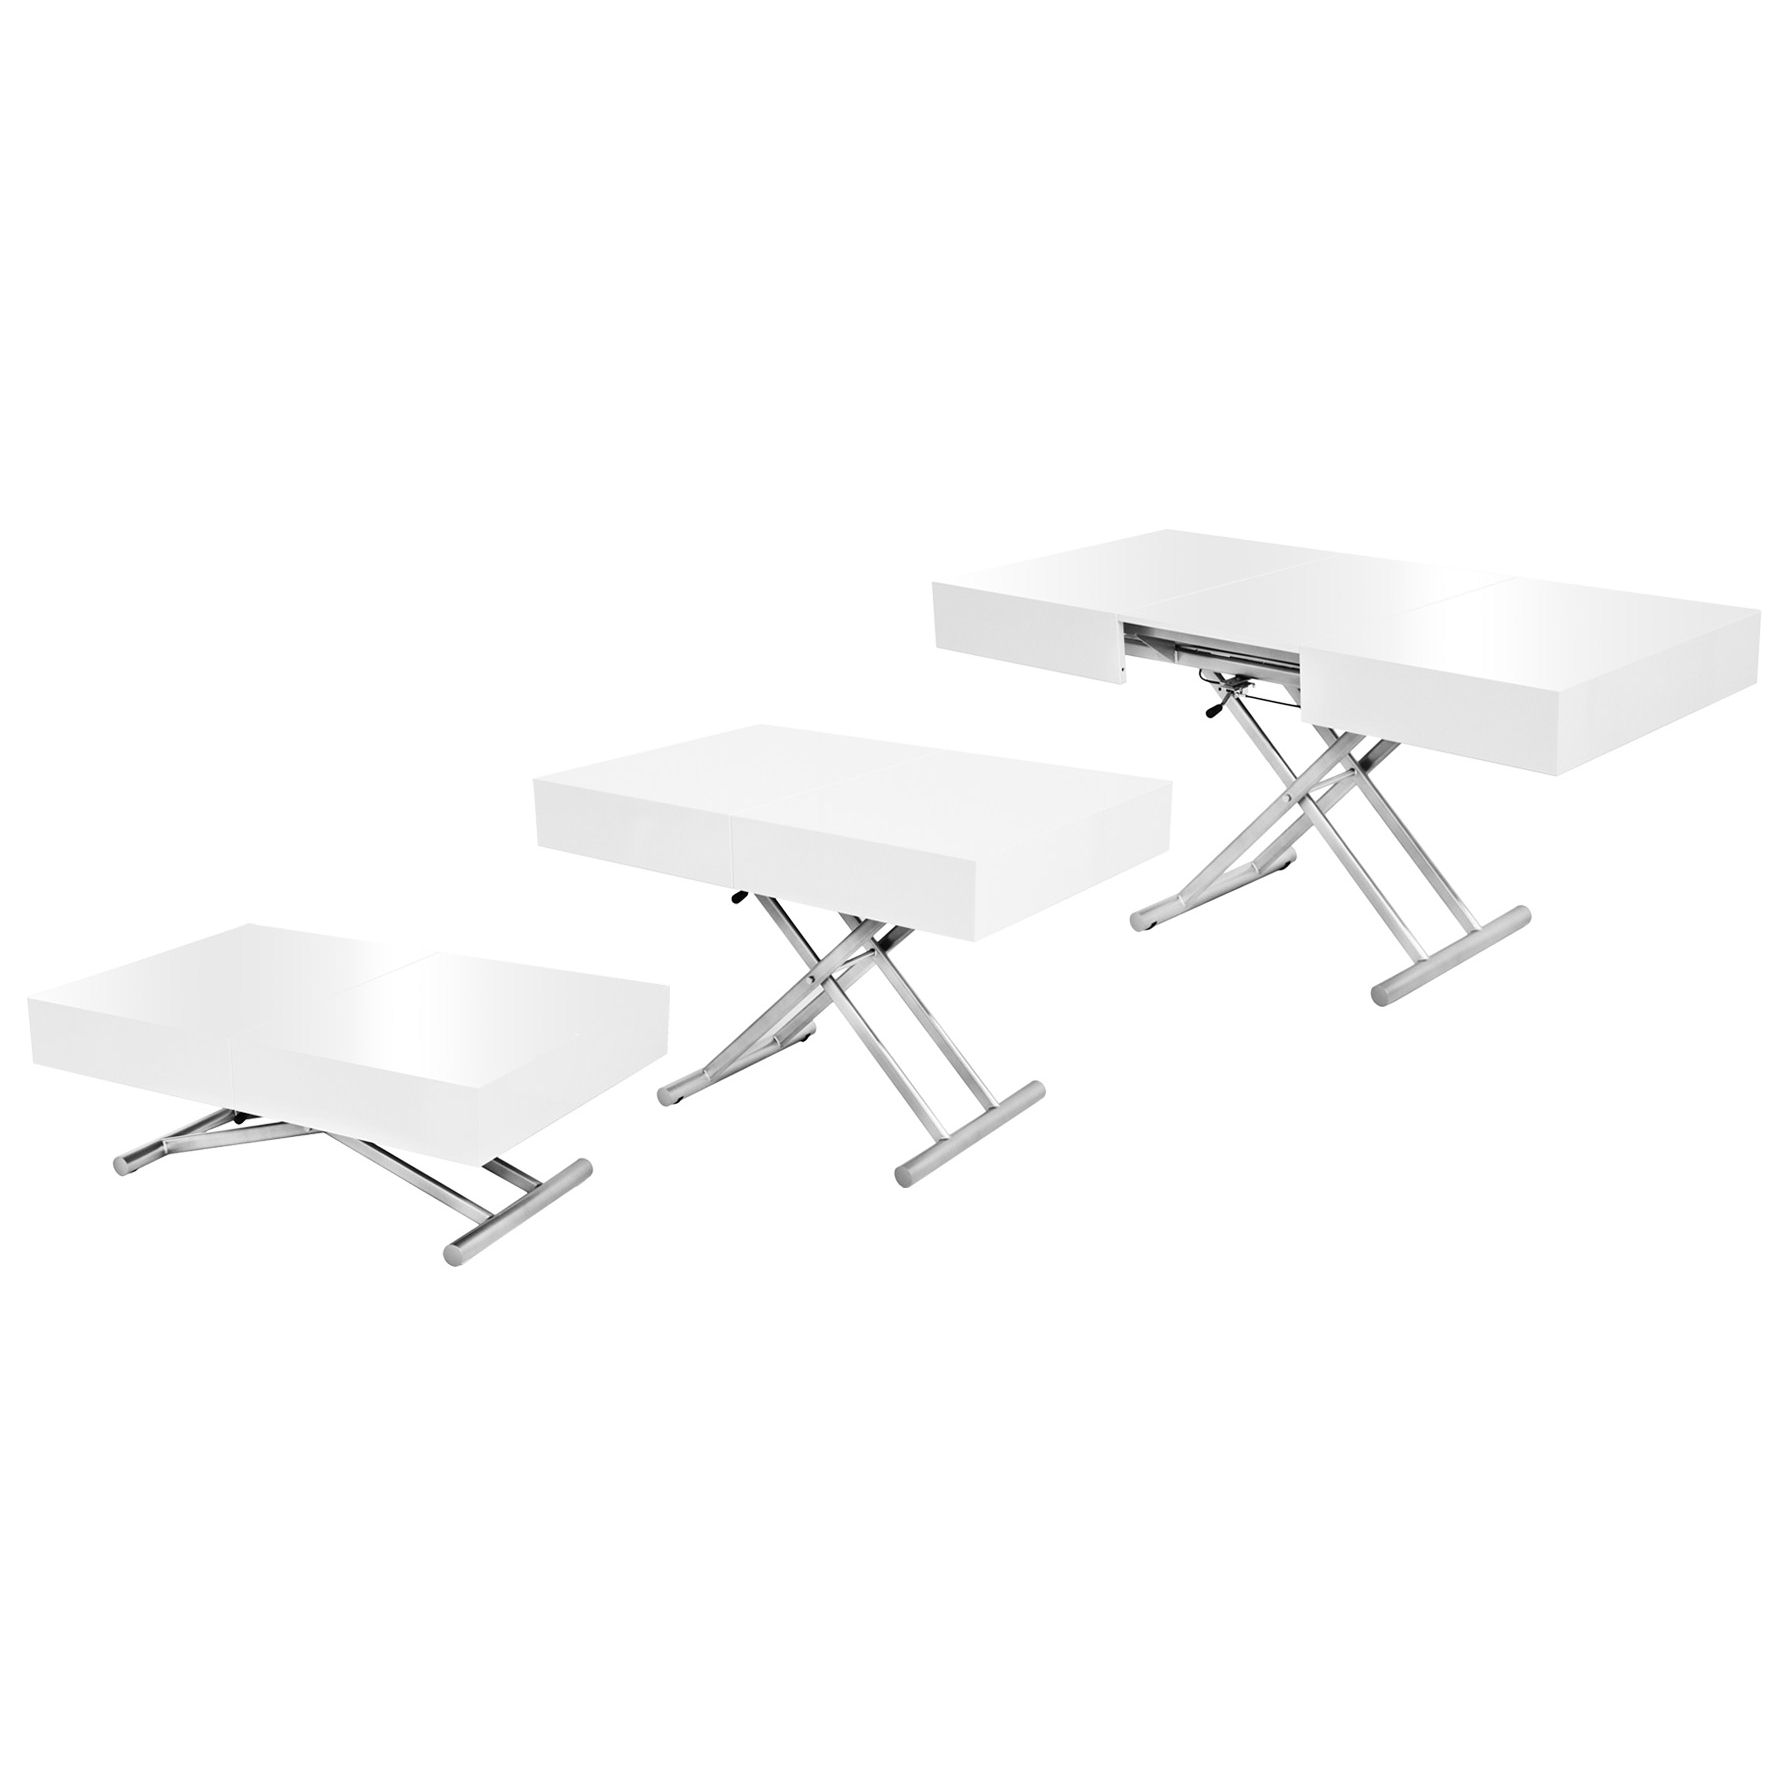 Deco in paris table basse relevable extensible blanche laquee smart tab rel - Table rehaussable but ...